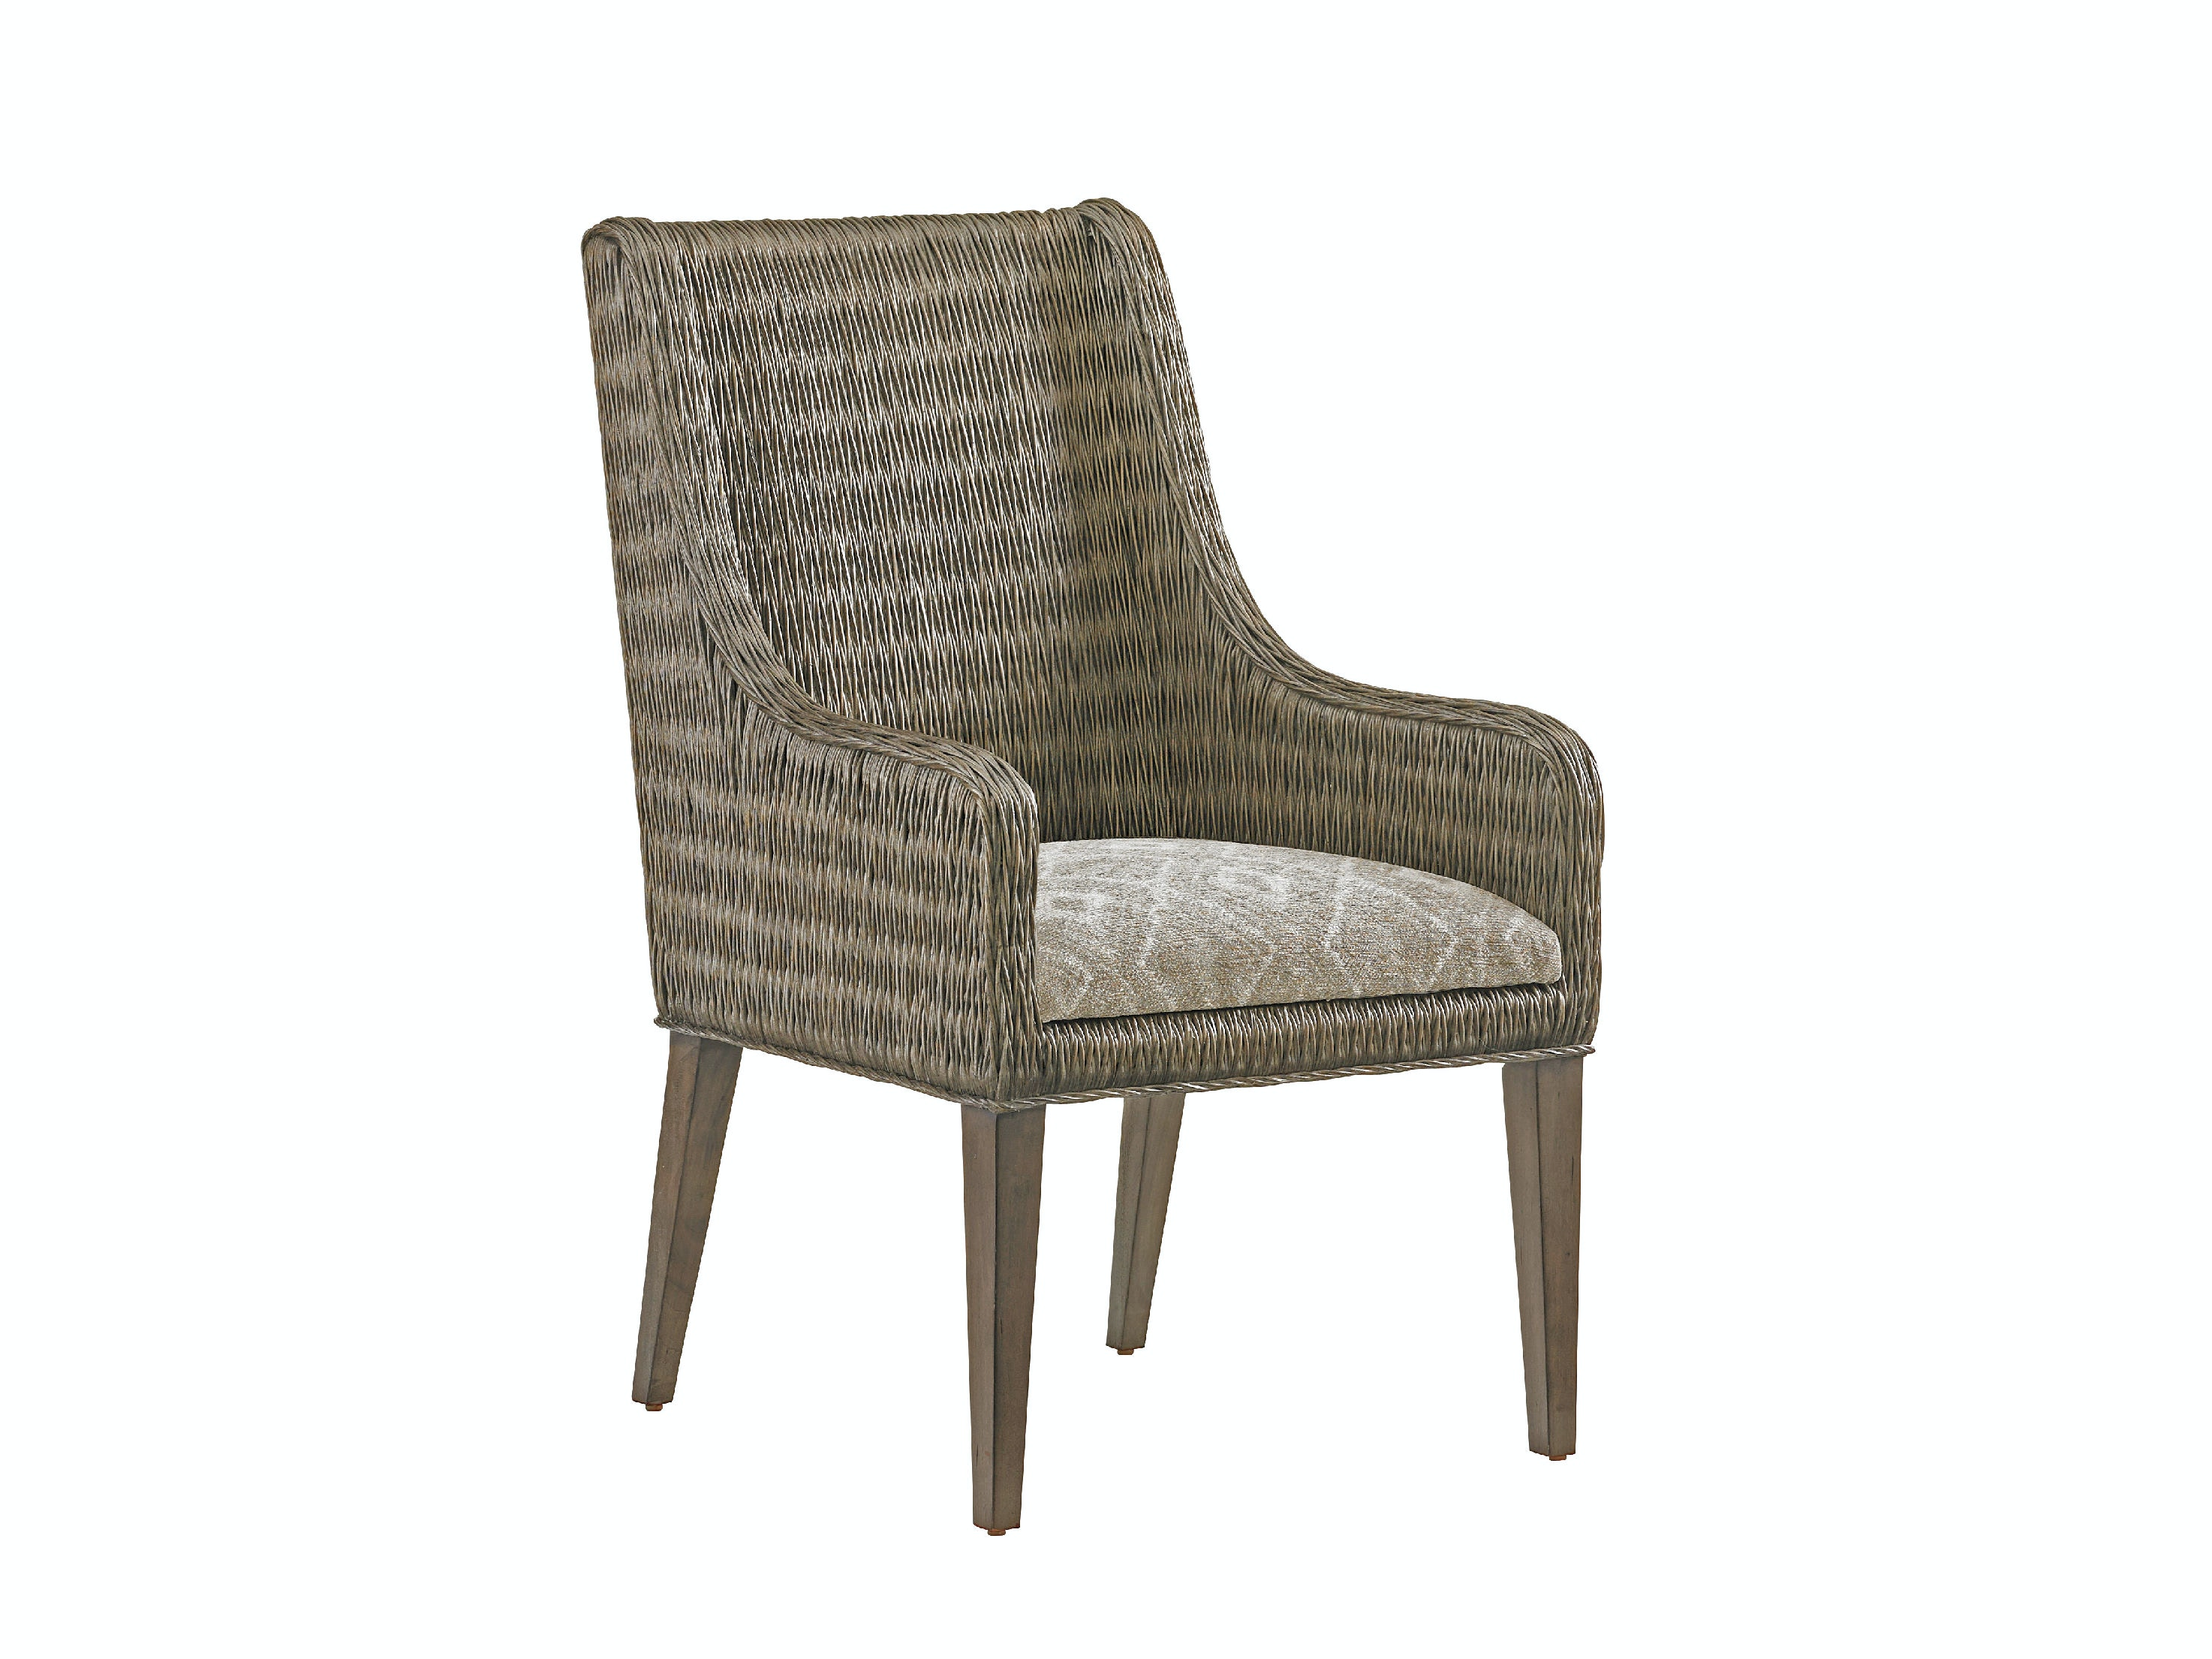 Tommy Bahama Home Dining Room Brandon Woven Arm Chair 562 883   Norris  Furniture   Fort Myers, Naples, Sanibel And Sarasota, FL